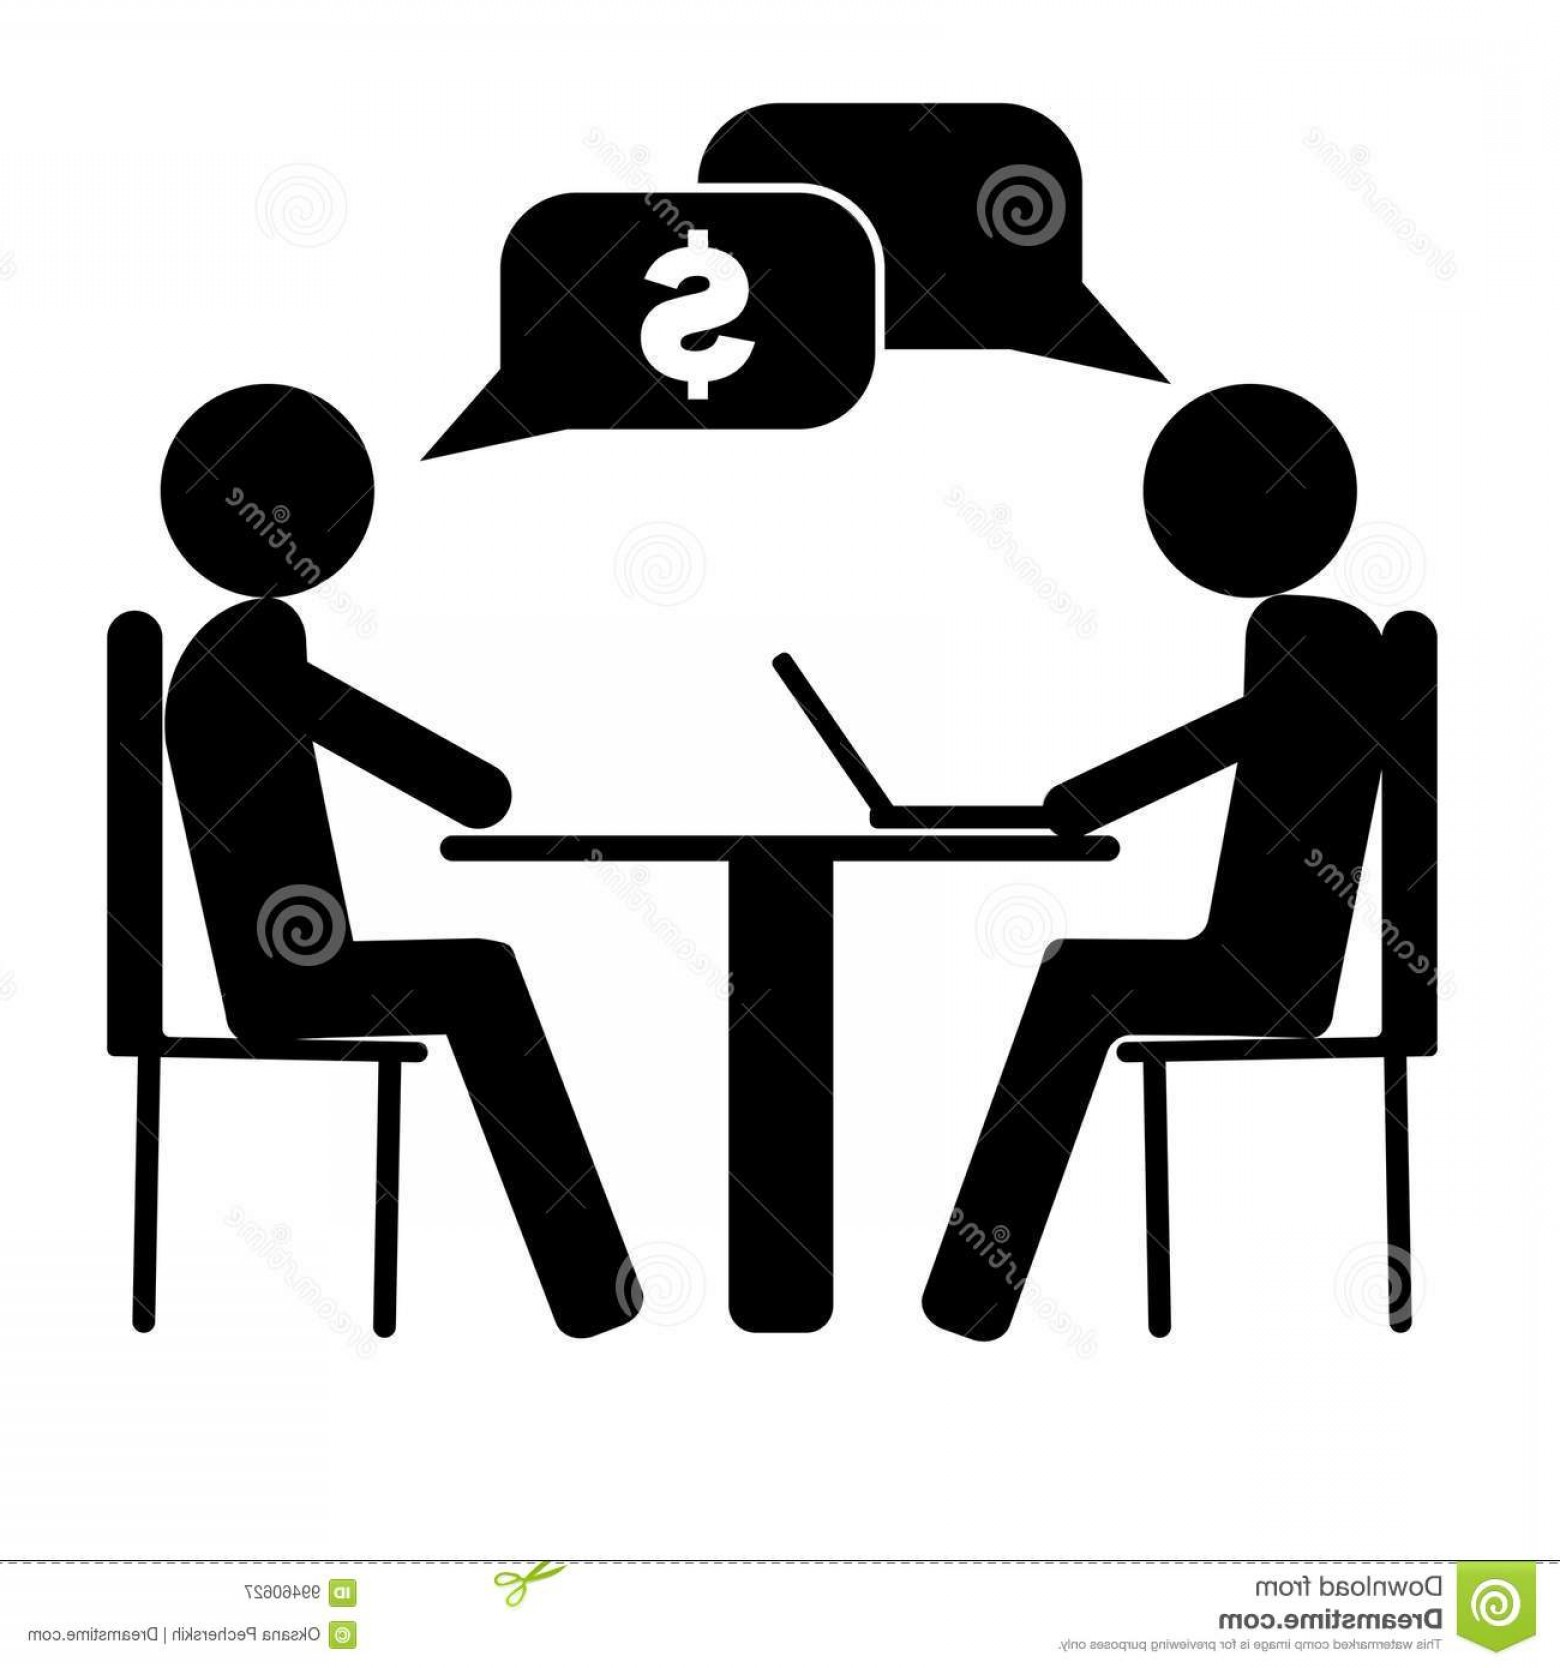 Two People Talking Vector Art: Stock Illustration Vector Image Two People Talking Business Work Sitting Table One Person Working Laptop Vector Image Two Image